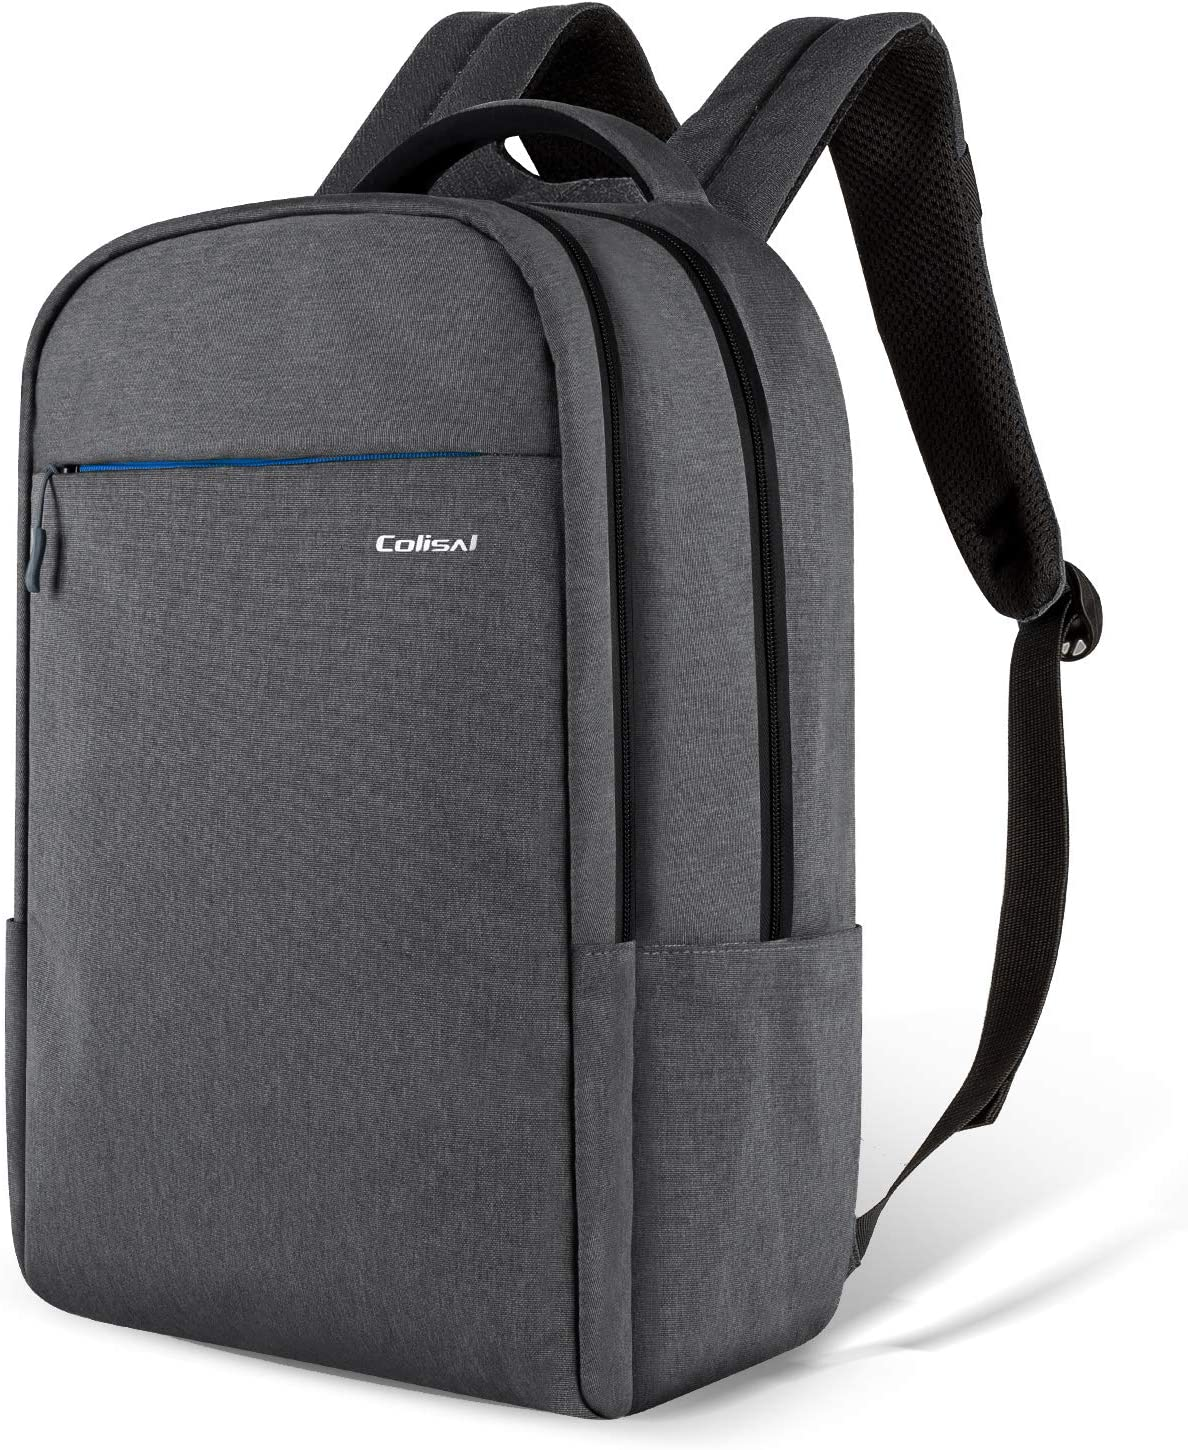 Colisal Travel Laptop Backpack 15 6 Inch Computer Backpack For Men Women Professional Business Backpack Students School Rucksack Lightweight Casual Daypack For Outdoor And Travel 25l Darkgrey Amazon Co Uk Diy Tools